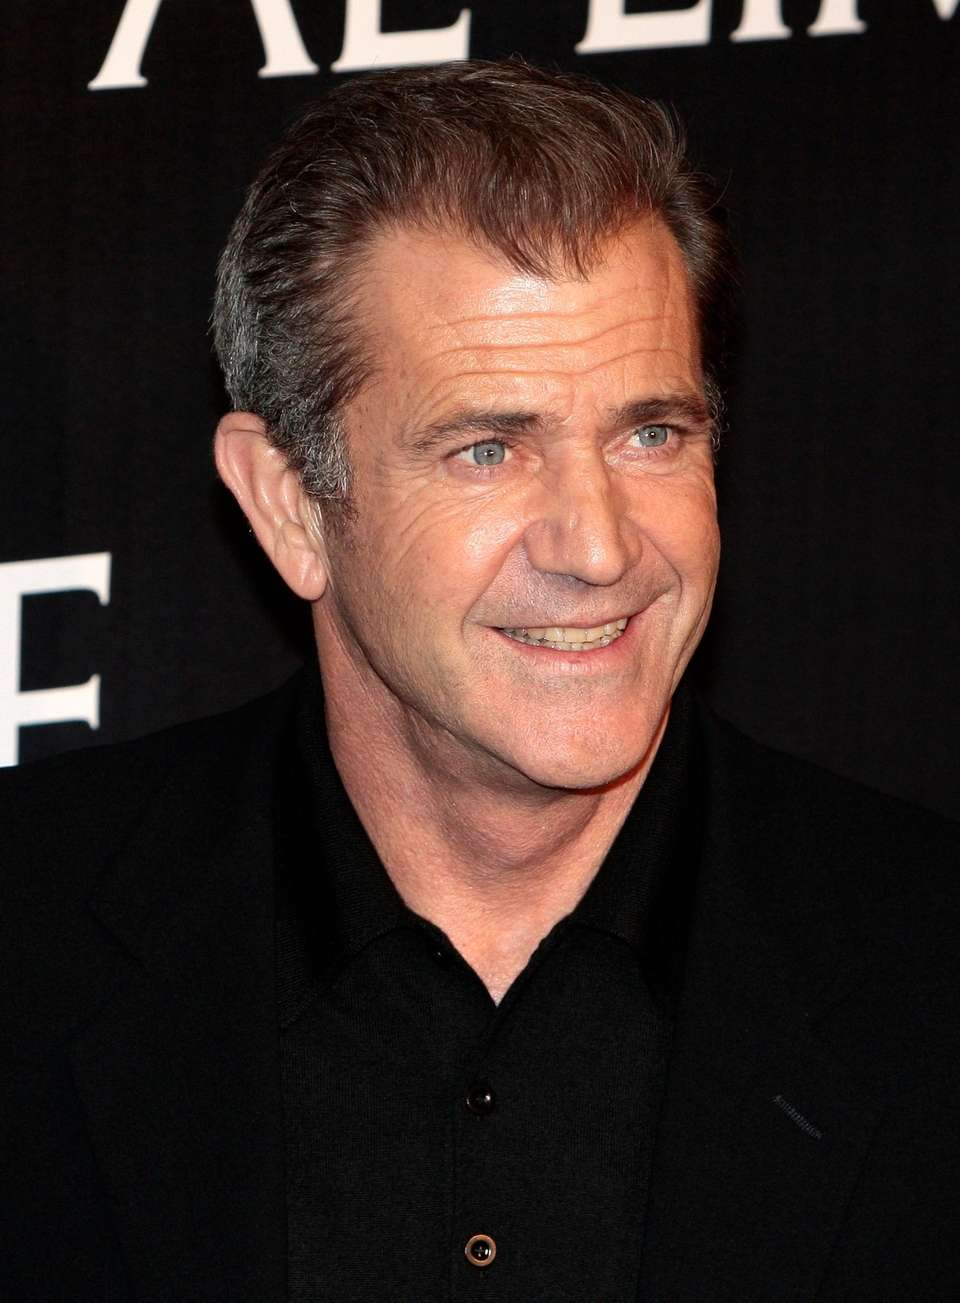 Oscar winner Mel Gibson sought rehab treatment in